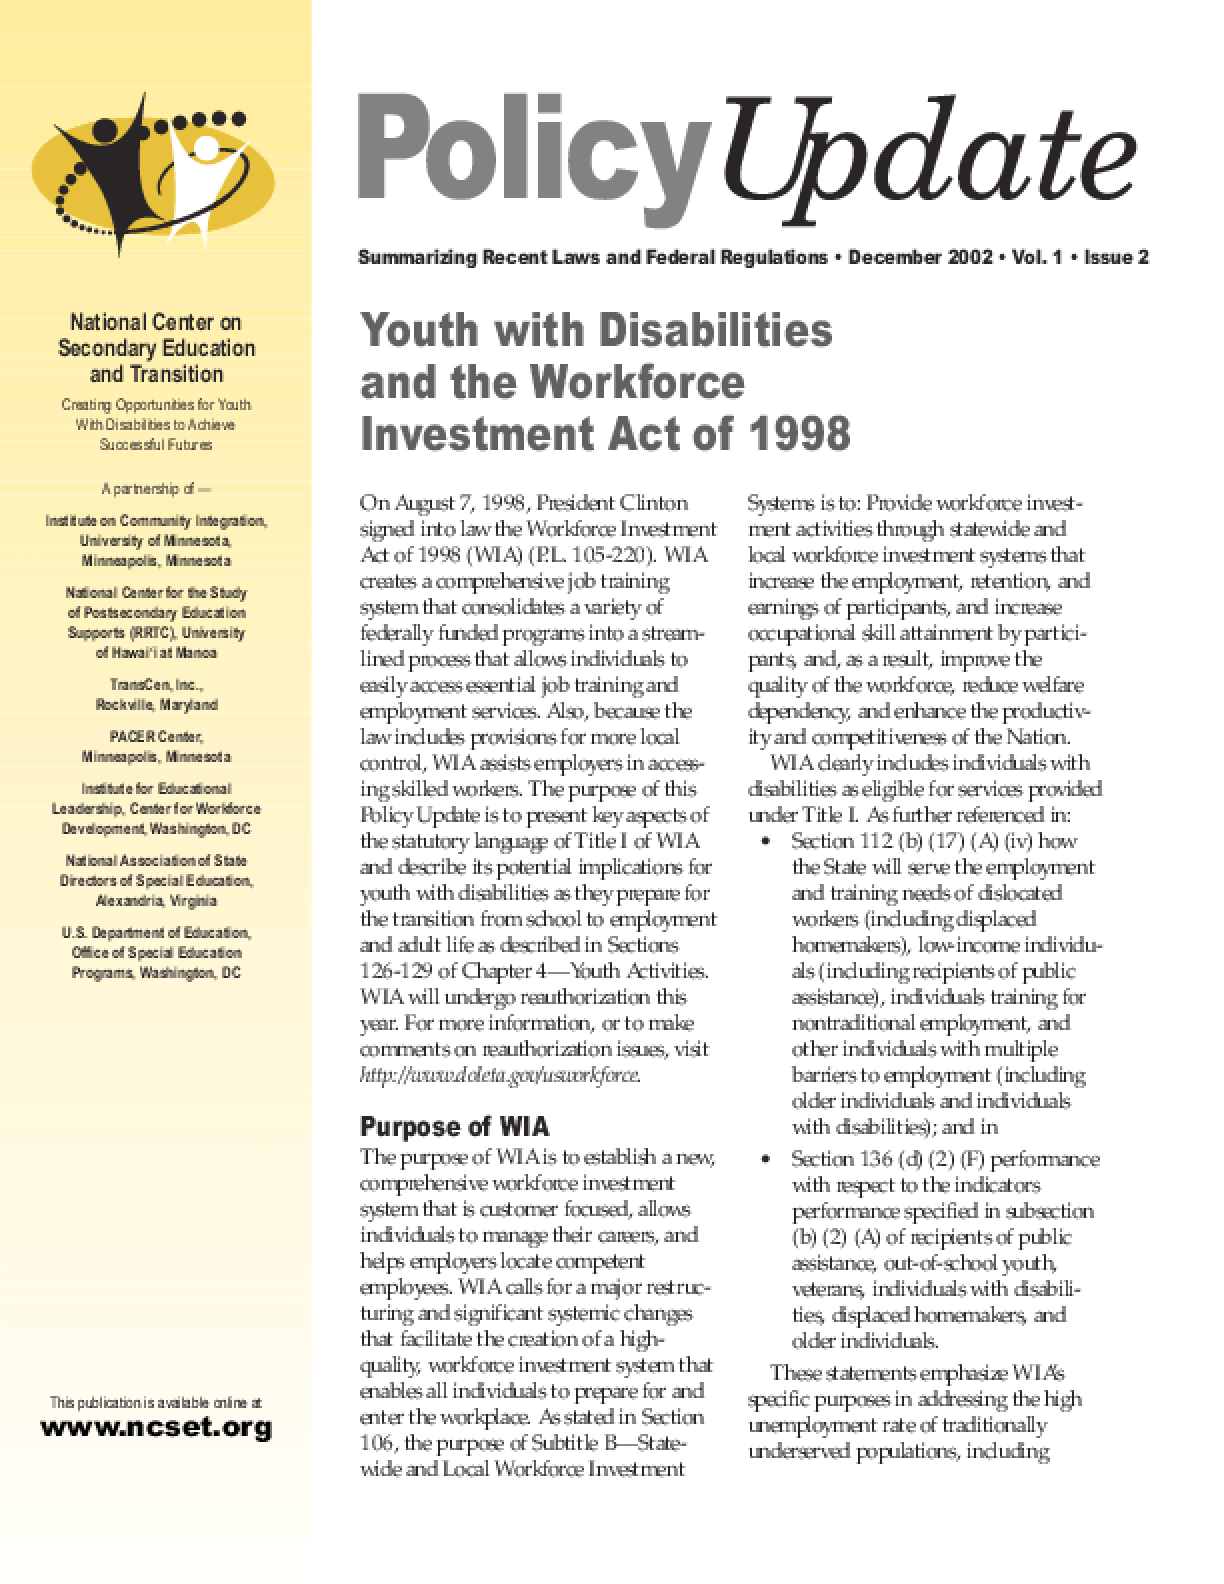 Youth with Disabilities and the Workforce Investment Act of 1998